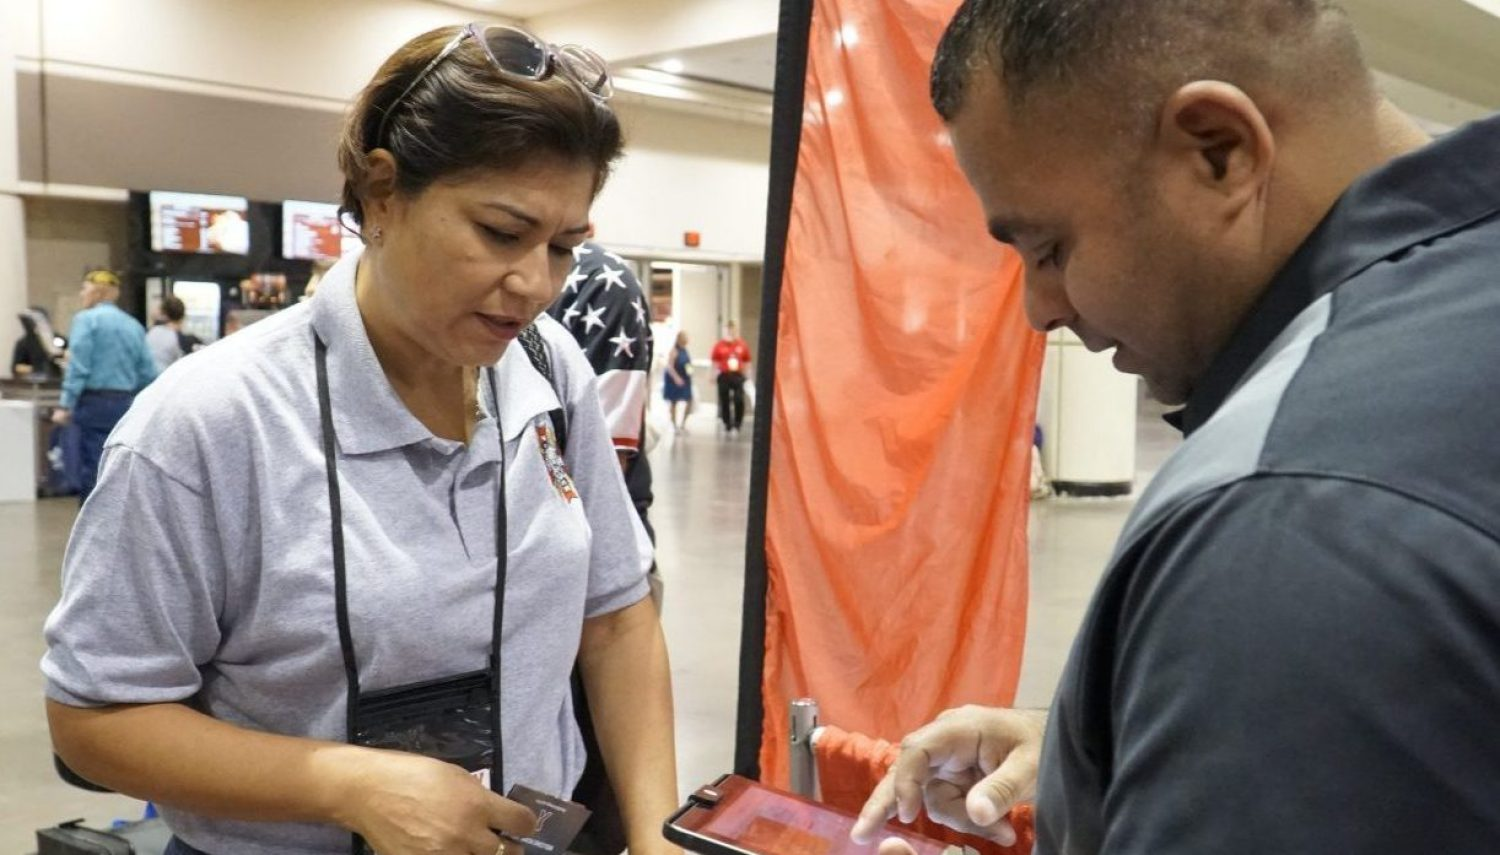 Army Veteran Francis Cordero Medina learns how to sign up for tax-free shopping at ShopMyExchange.com with help from Exchange Veteran Service